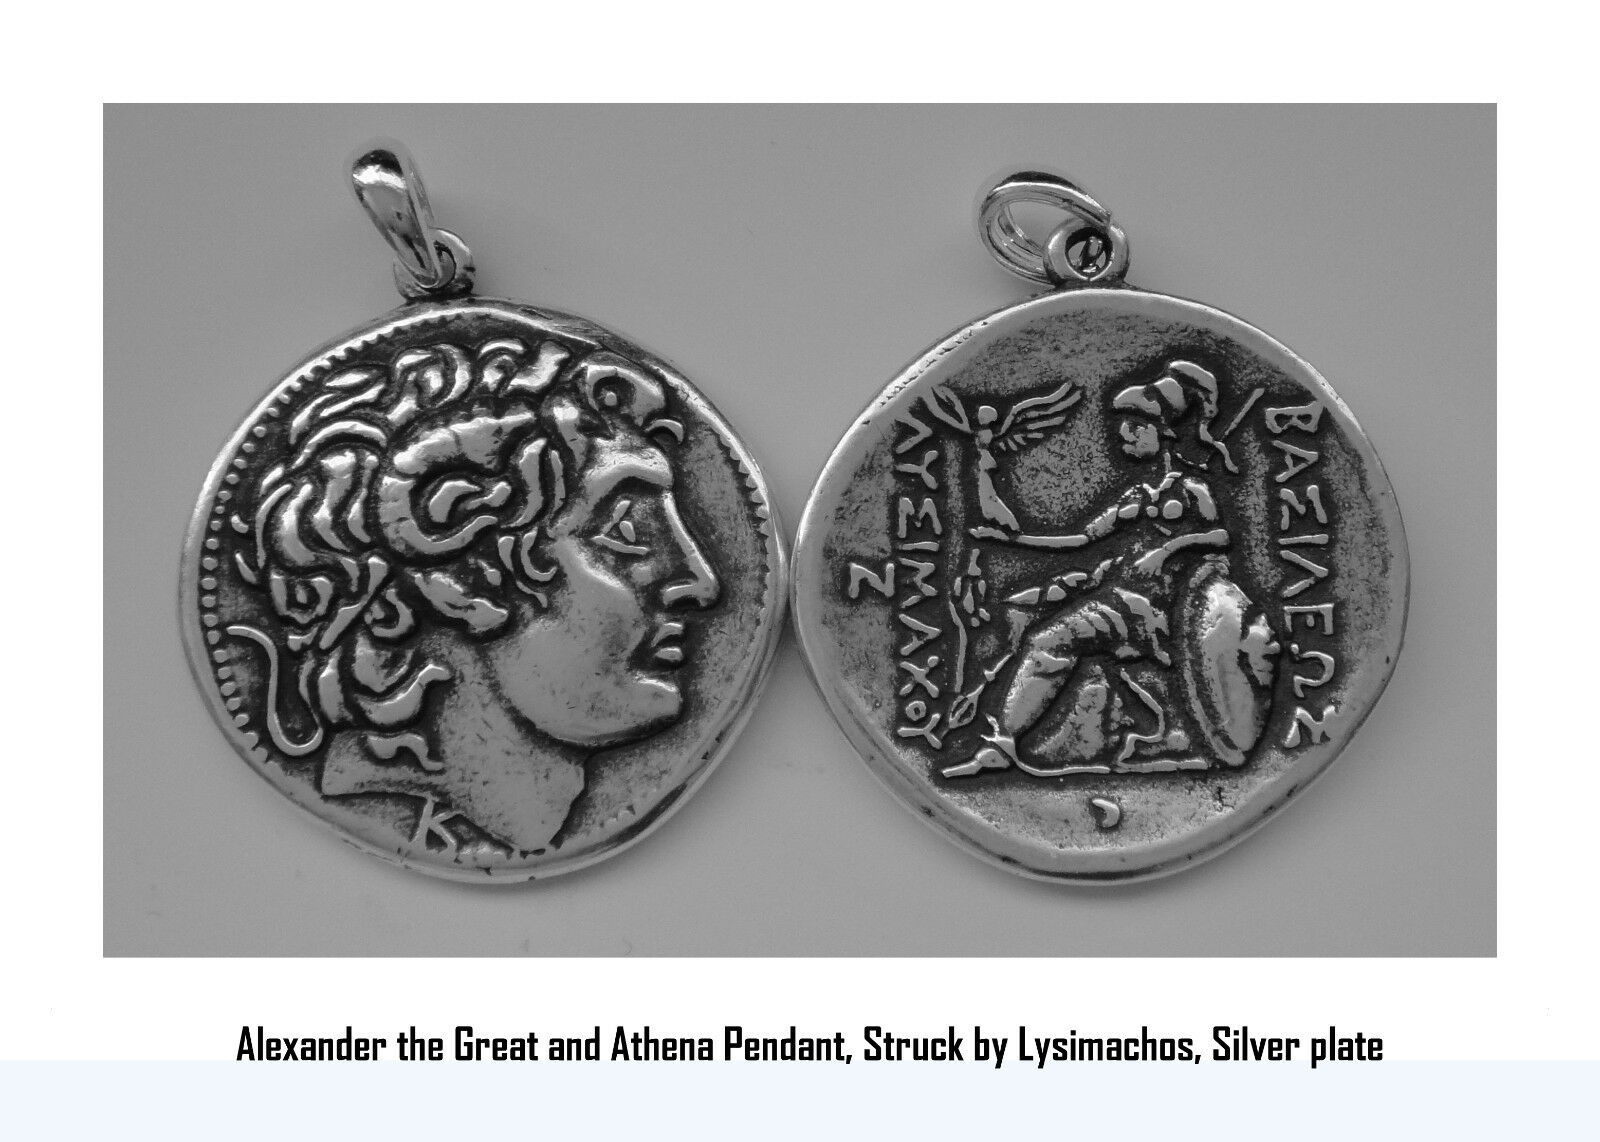 Alexander the Great and Athena, King of Macedonia, Pendant, 68-S